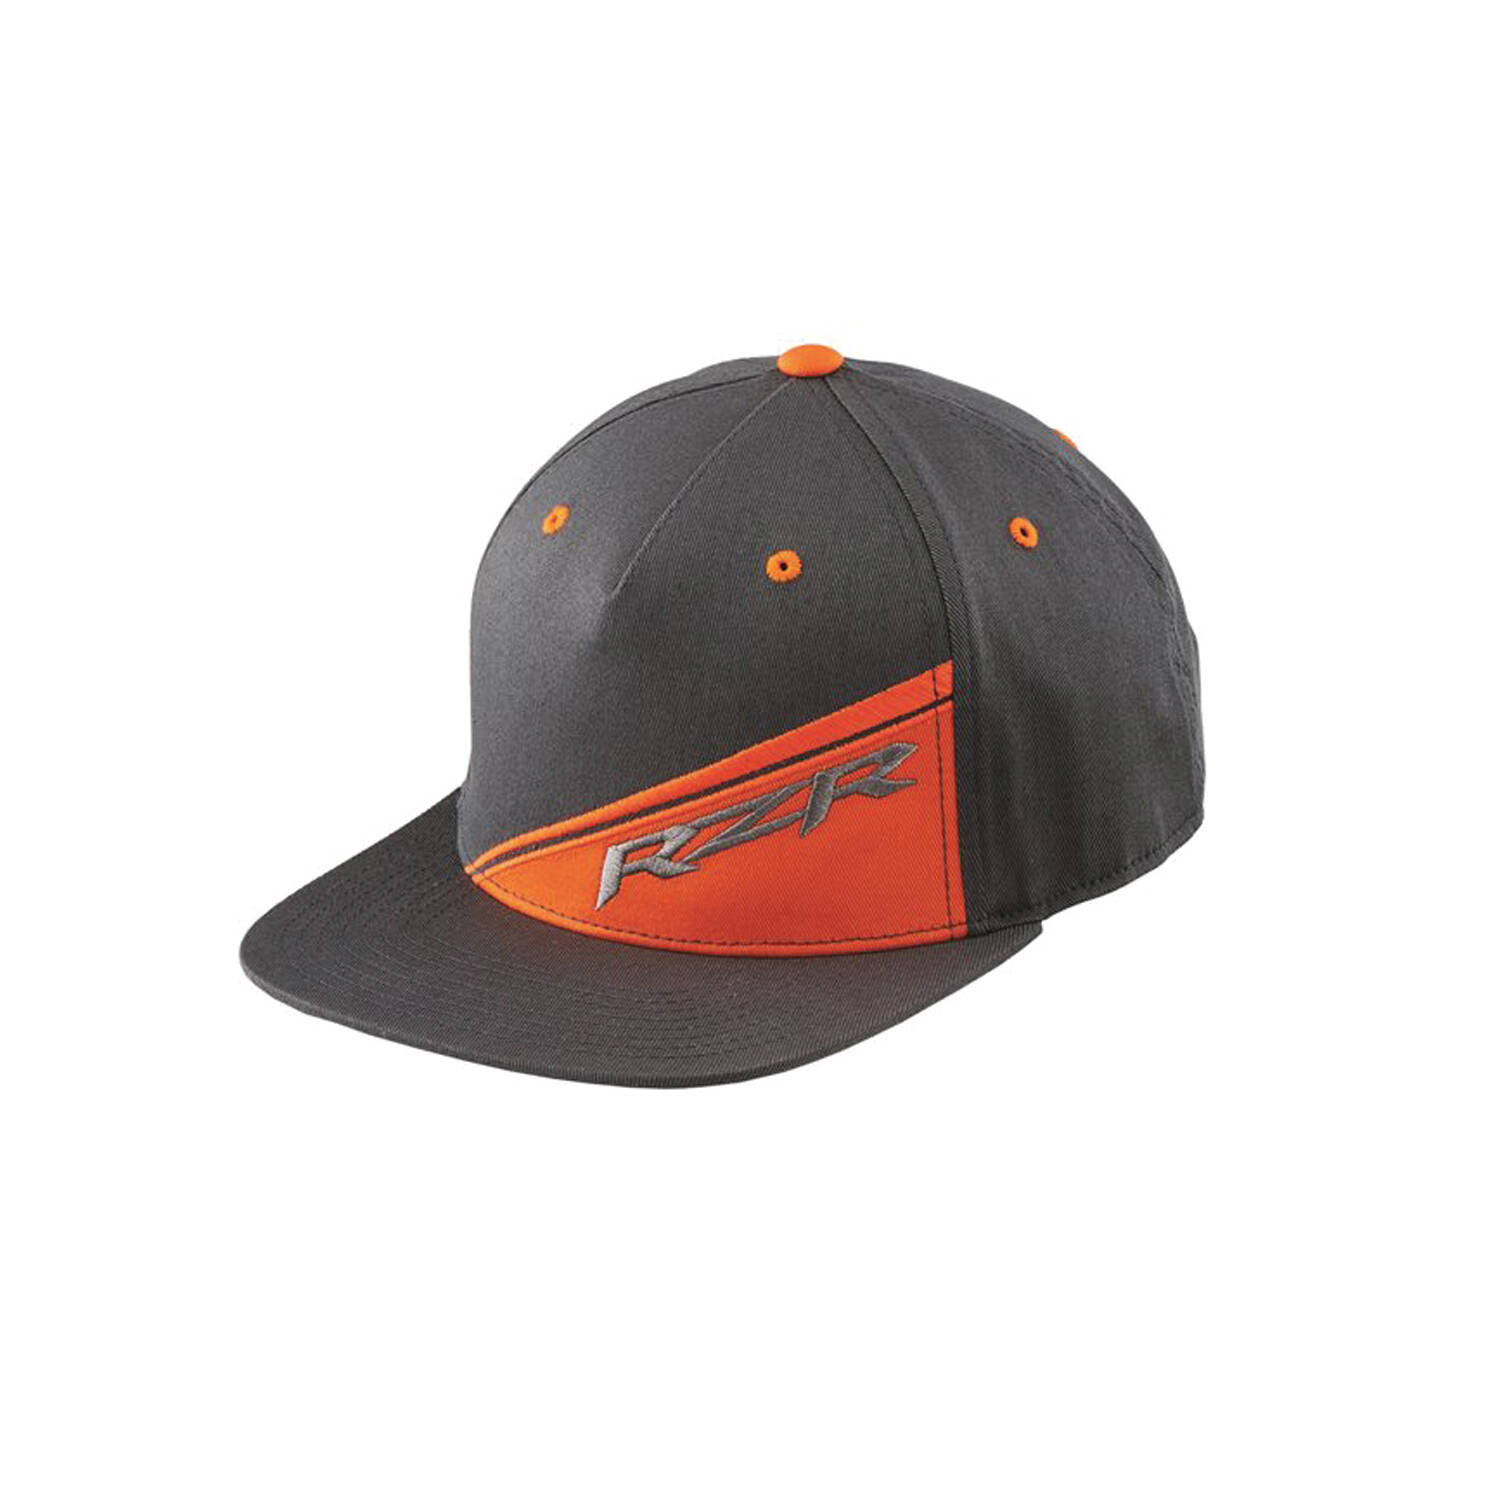 11a1d503b Men's Flexfit Flatbill SoCal Hat with RZR® Logo